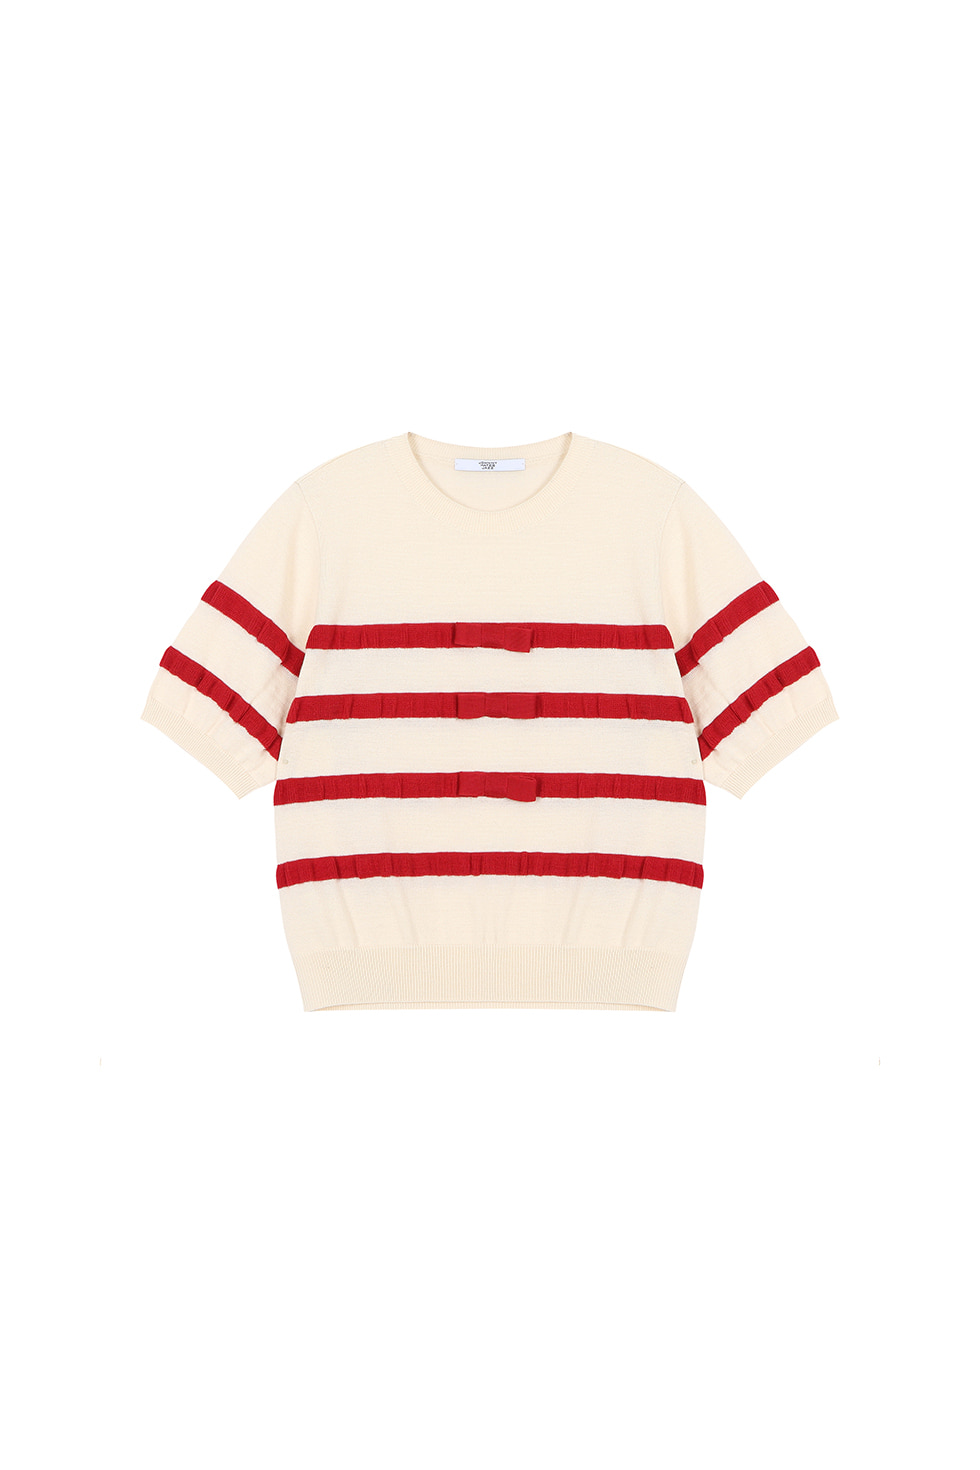 RIBBON KNIT PULLOVER - RED